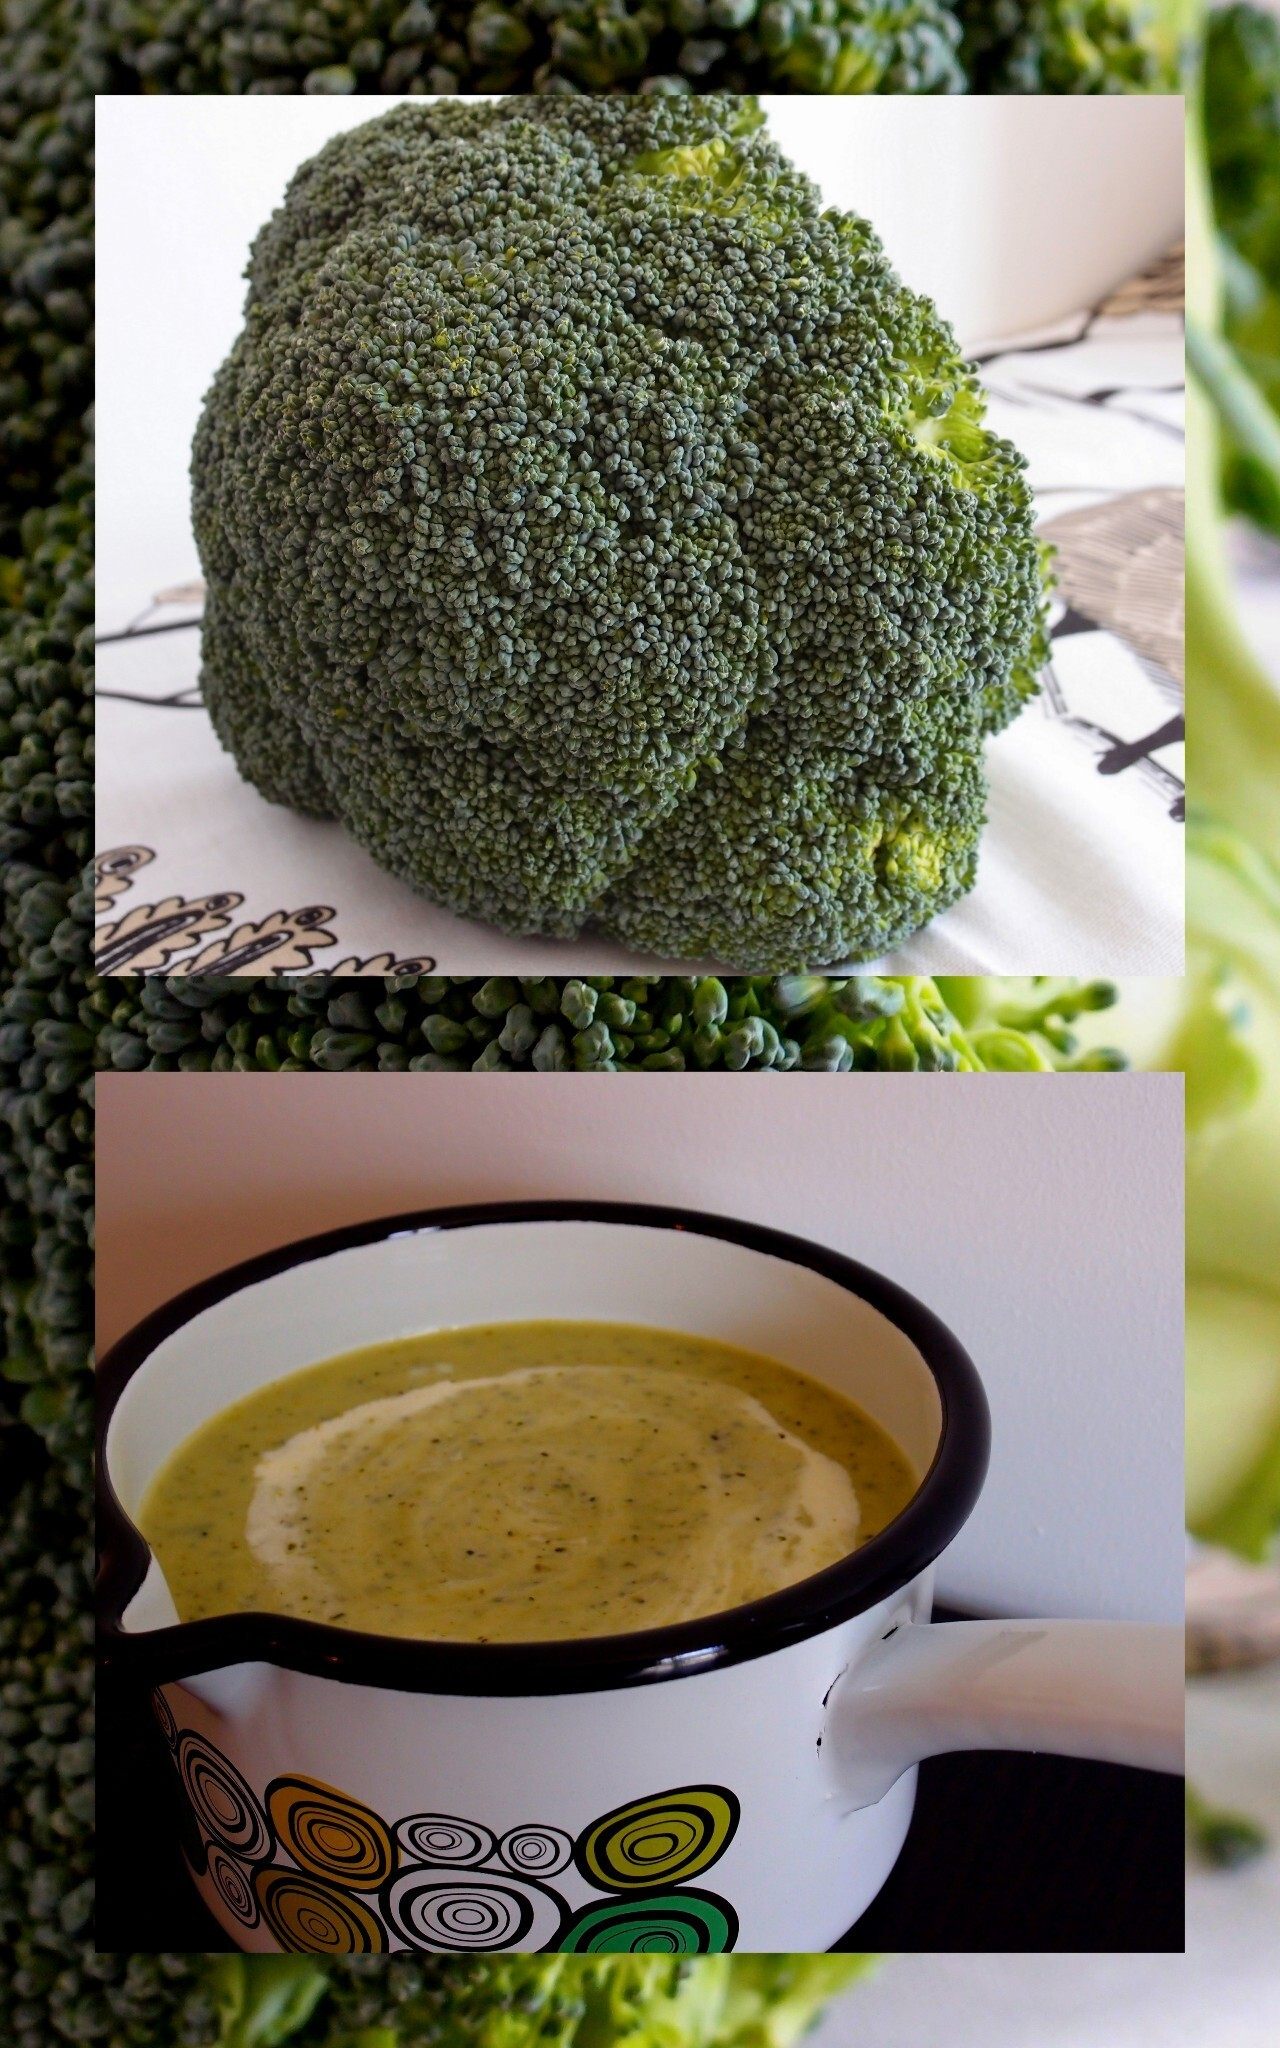 Broccoli and potato cream soup